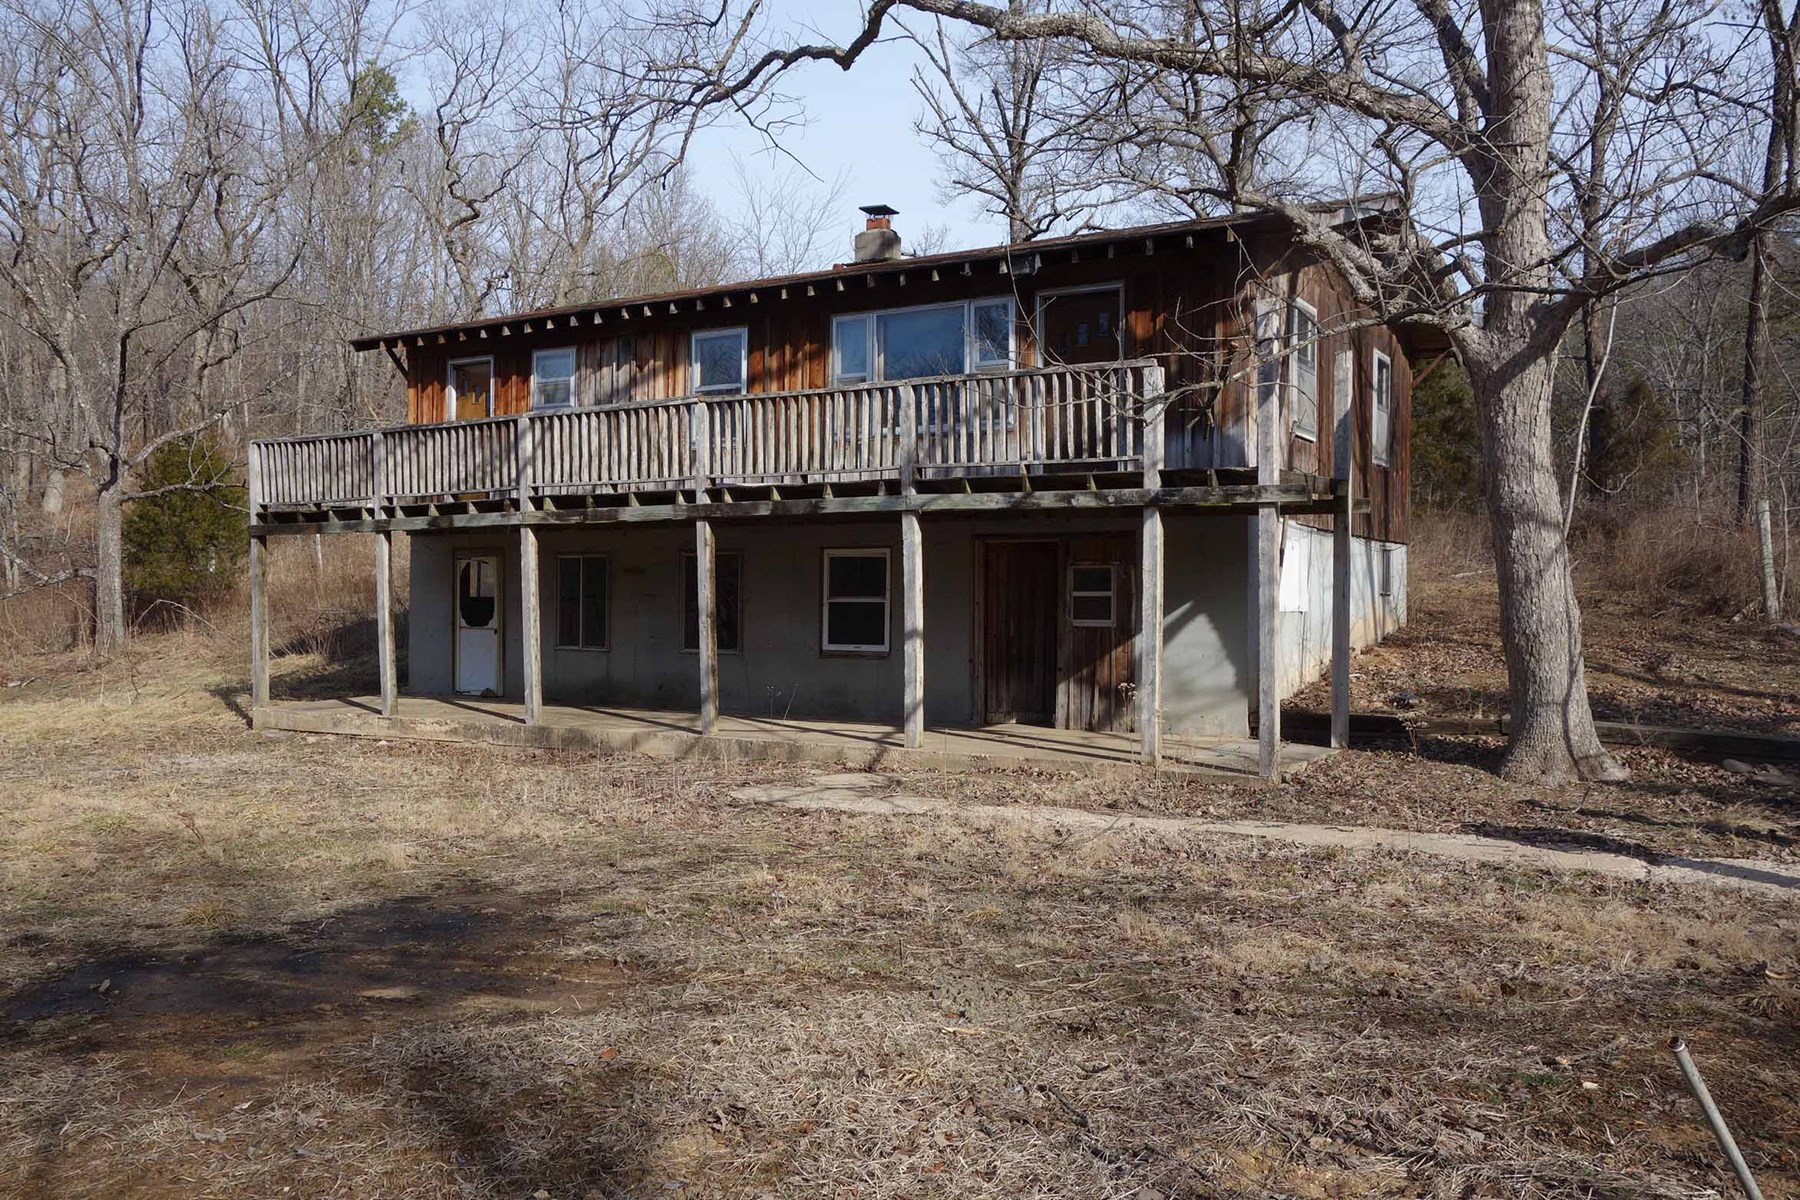 SOUTHERN MISSOURI FIXER-UPPER CABIN & 30.82 ACRES FOR SALE